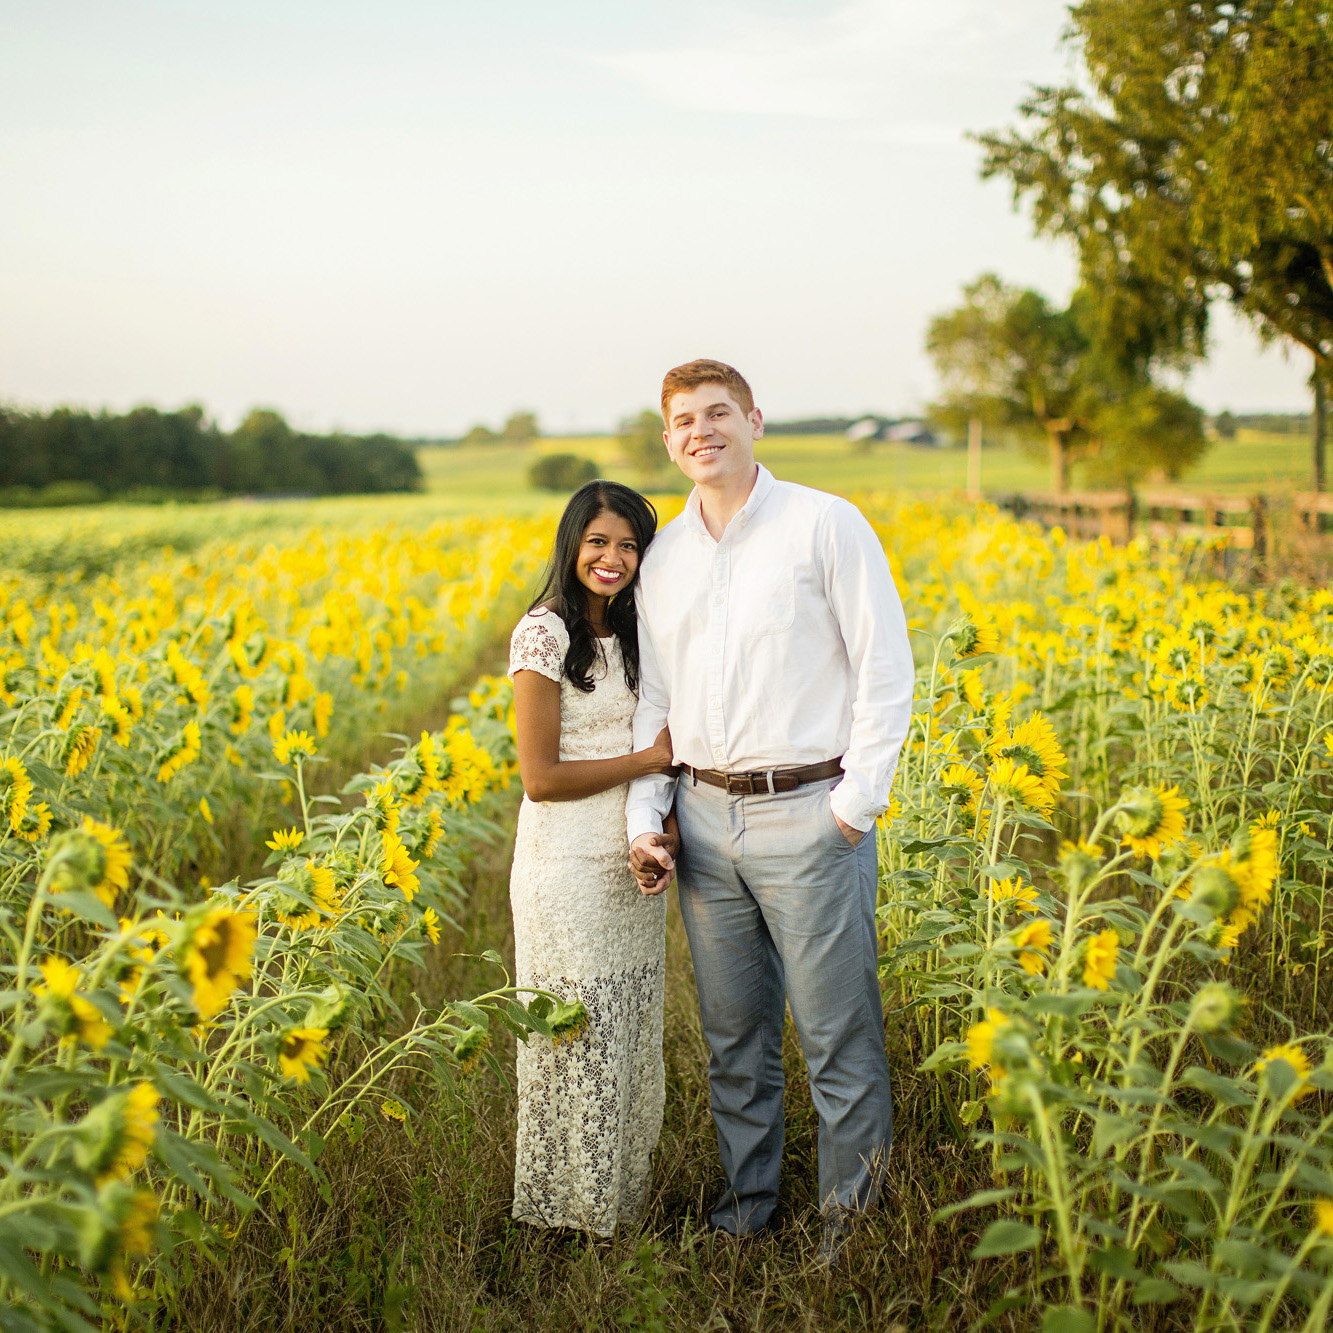 Seriously_Sabrina_Photography_Lexington_Midway_Kentucky_Engagement_Merefield_Sunflowers_Naz_and_Drew21.jpg